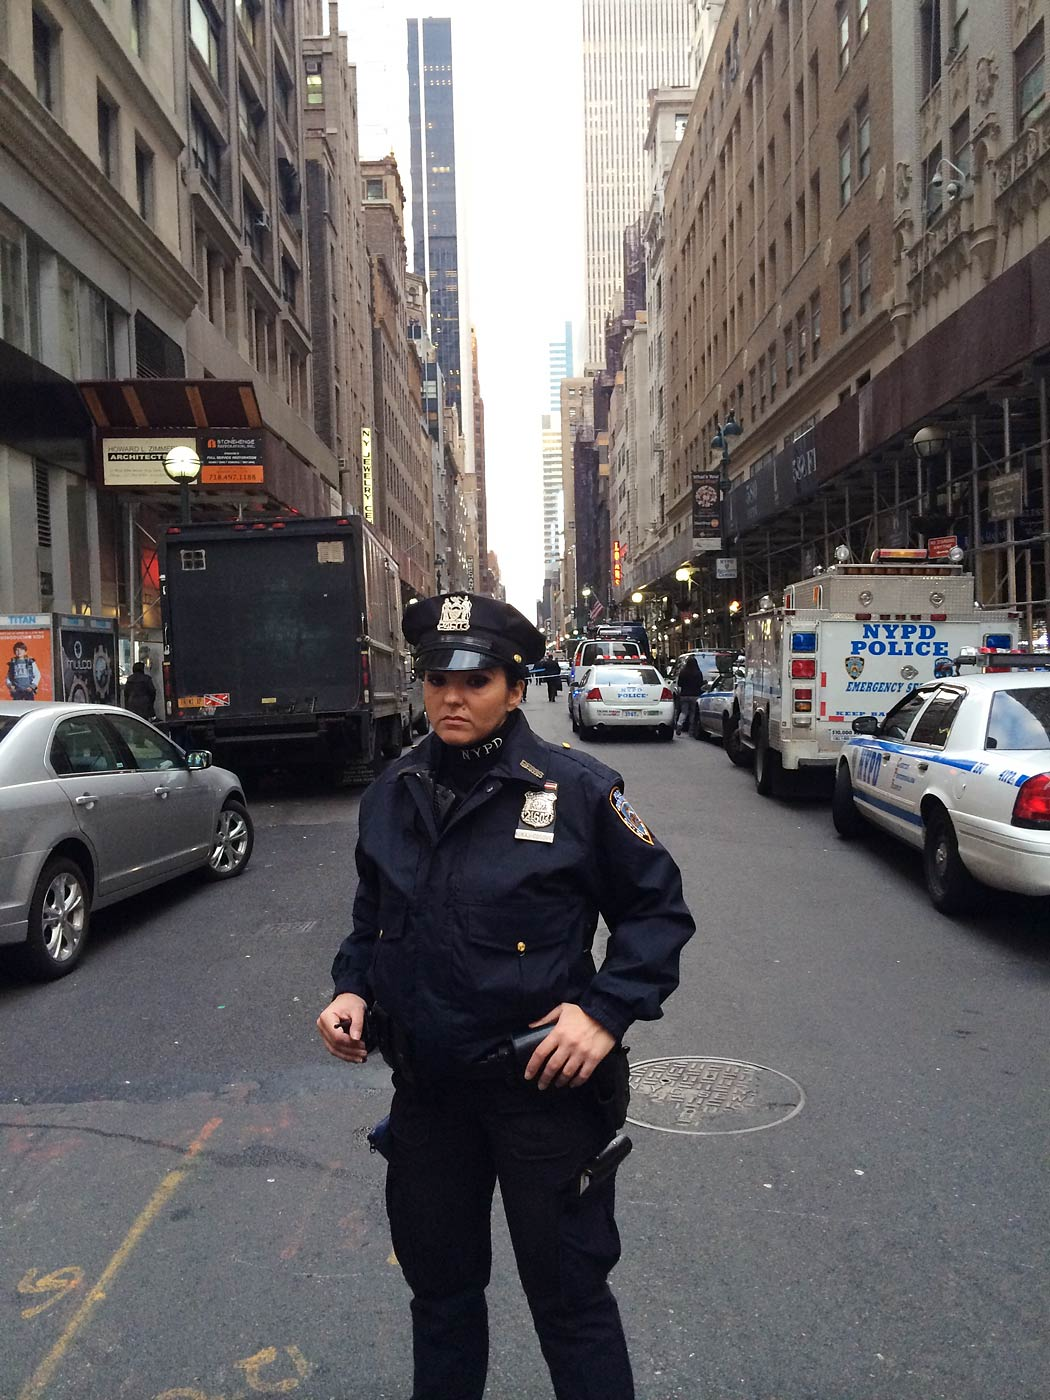 A police officer stands guard at the entrance of the Diamond District in New York City on Nov. 11, 2014.